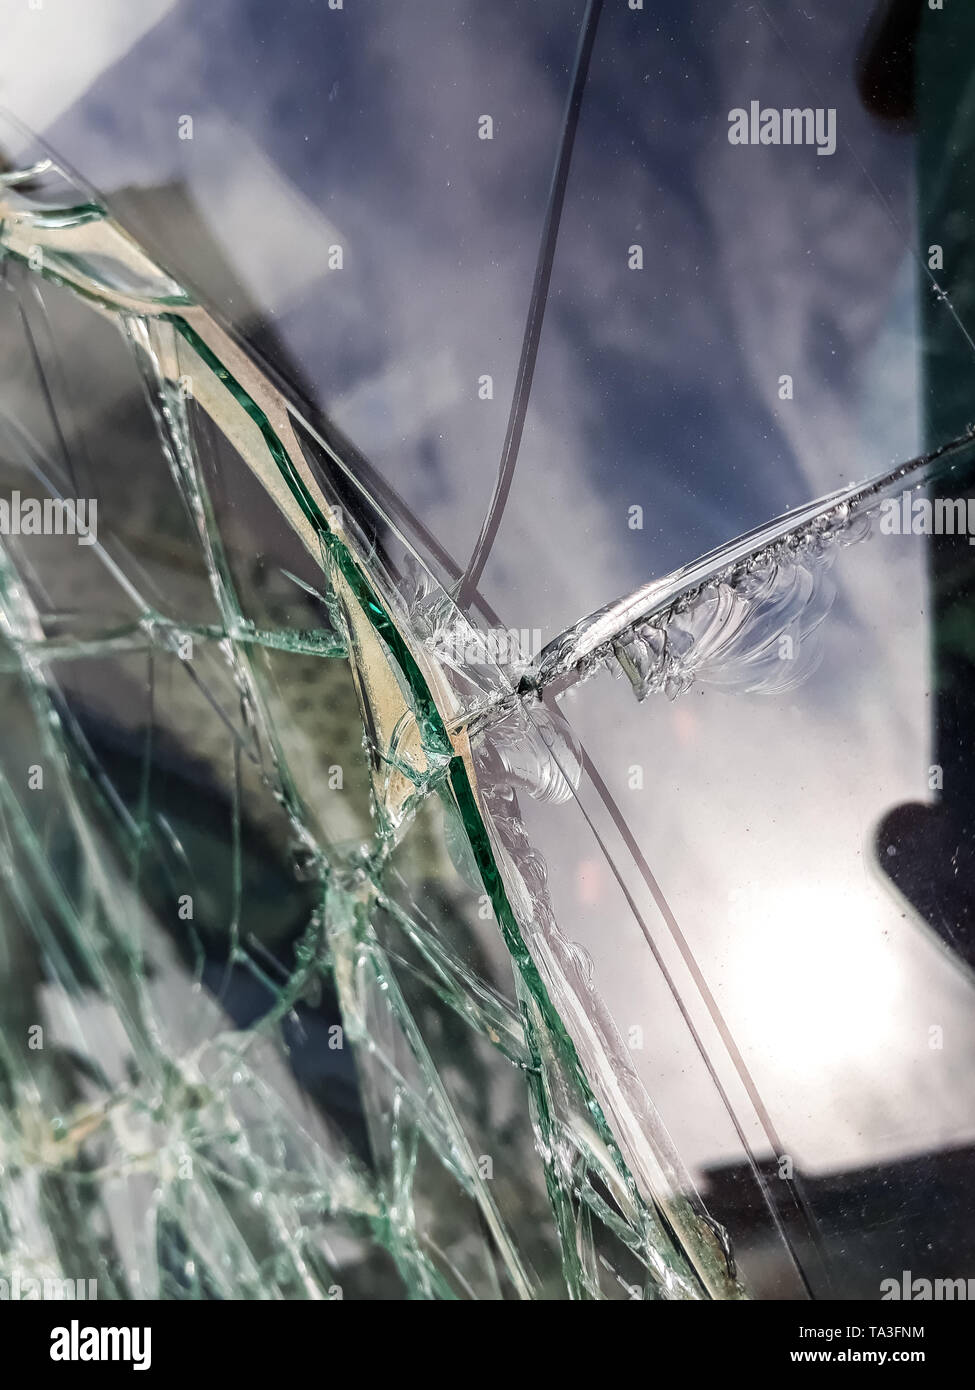 Broken windshield of abandoned and destroyed car, with broken glass. - Stock Image